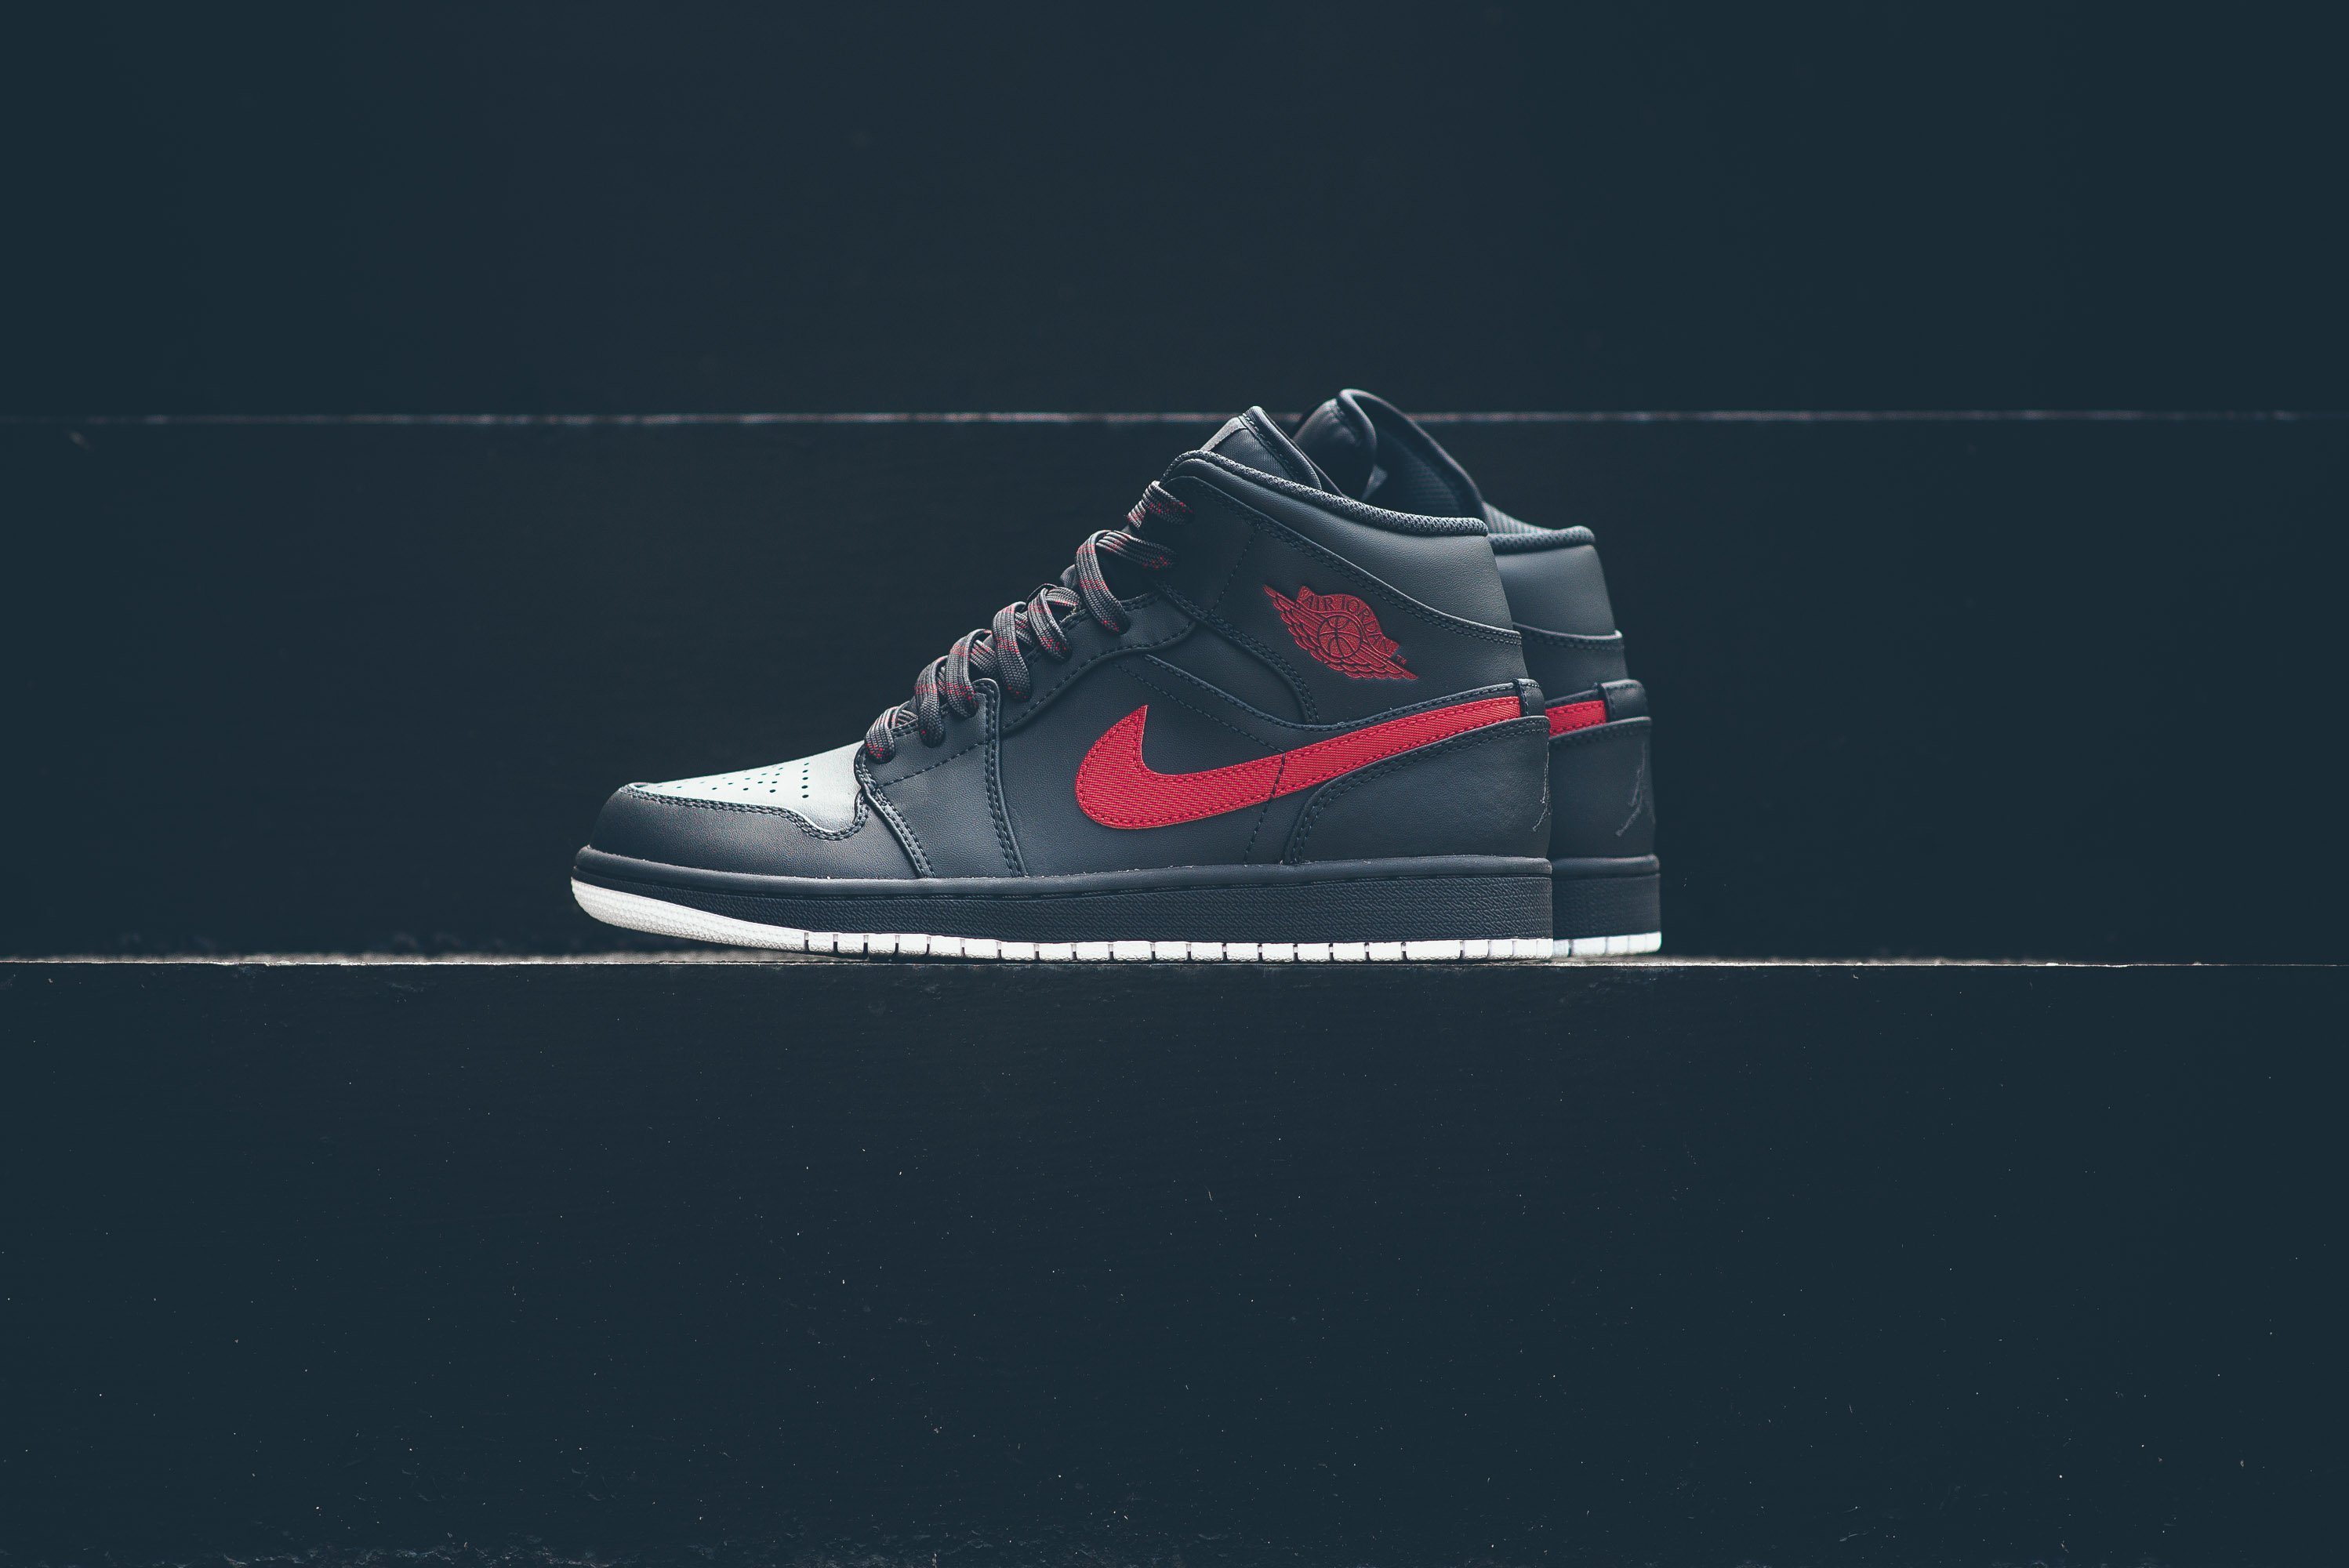 27a7afea339a air jordan 1 mid Archives - Air 23 - Air Jordan Release Dates ...